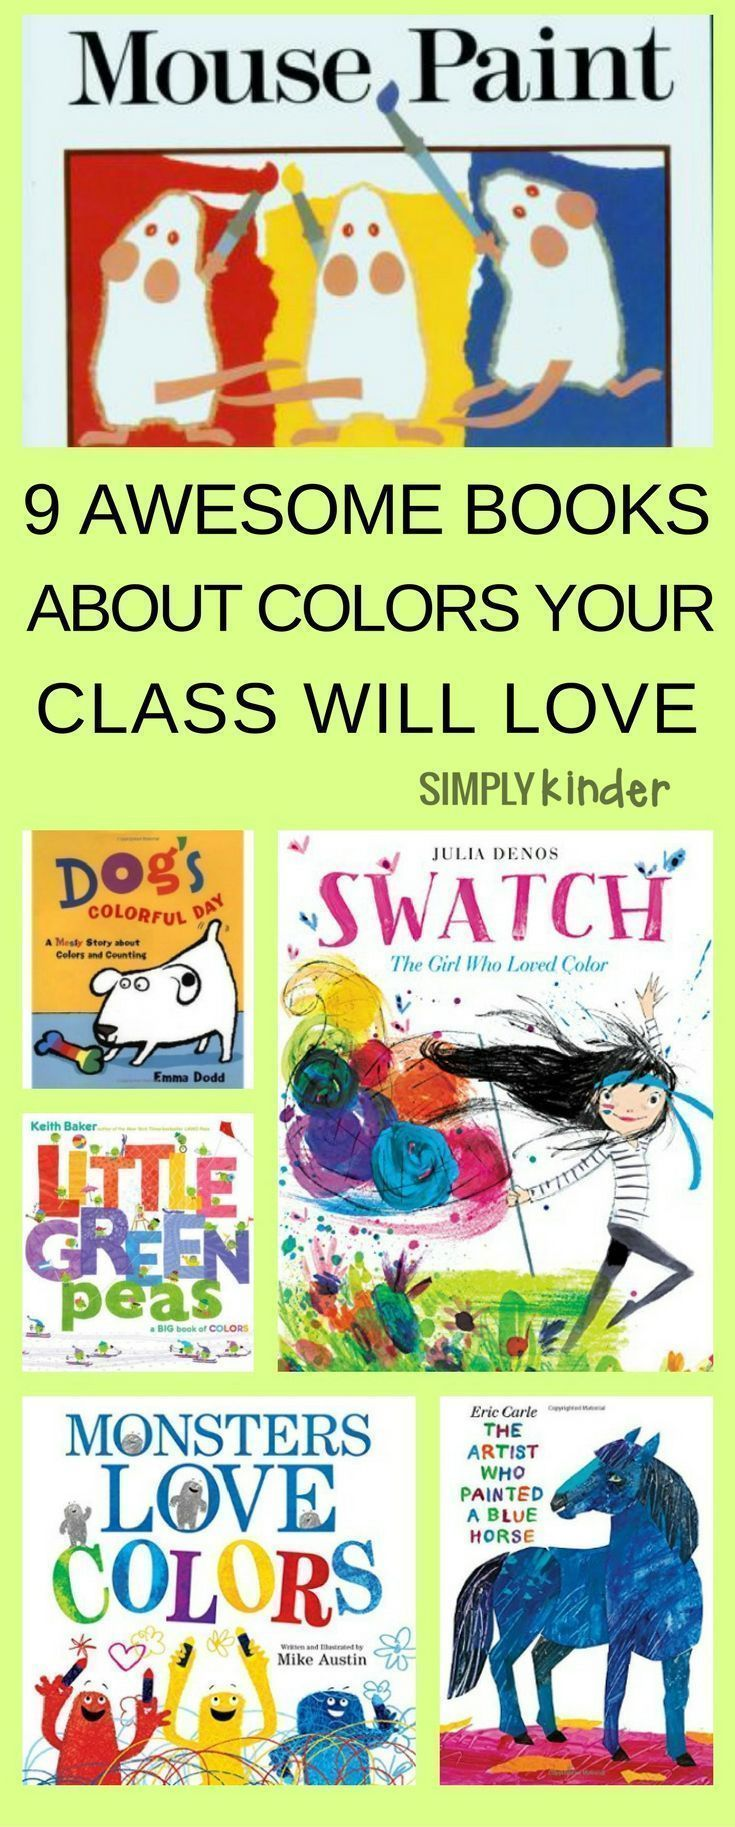 9 Awesome Books About Color Your Class Will Love | Books | Pinterest ...